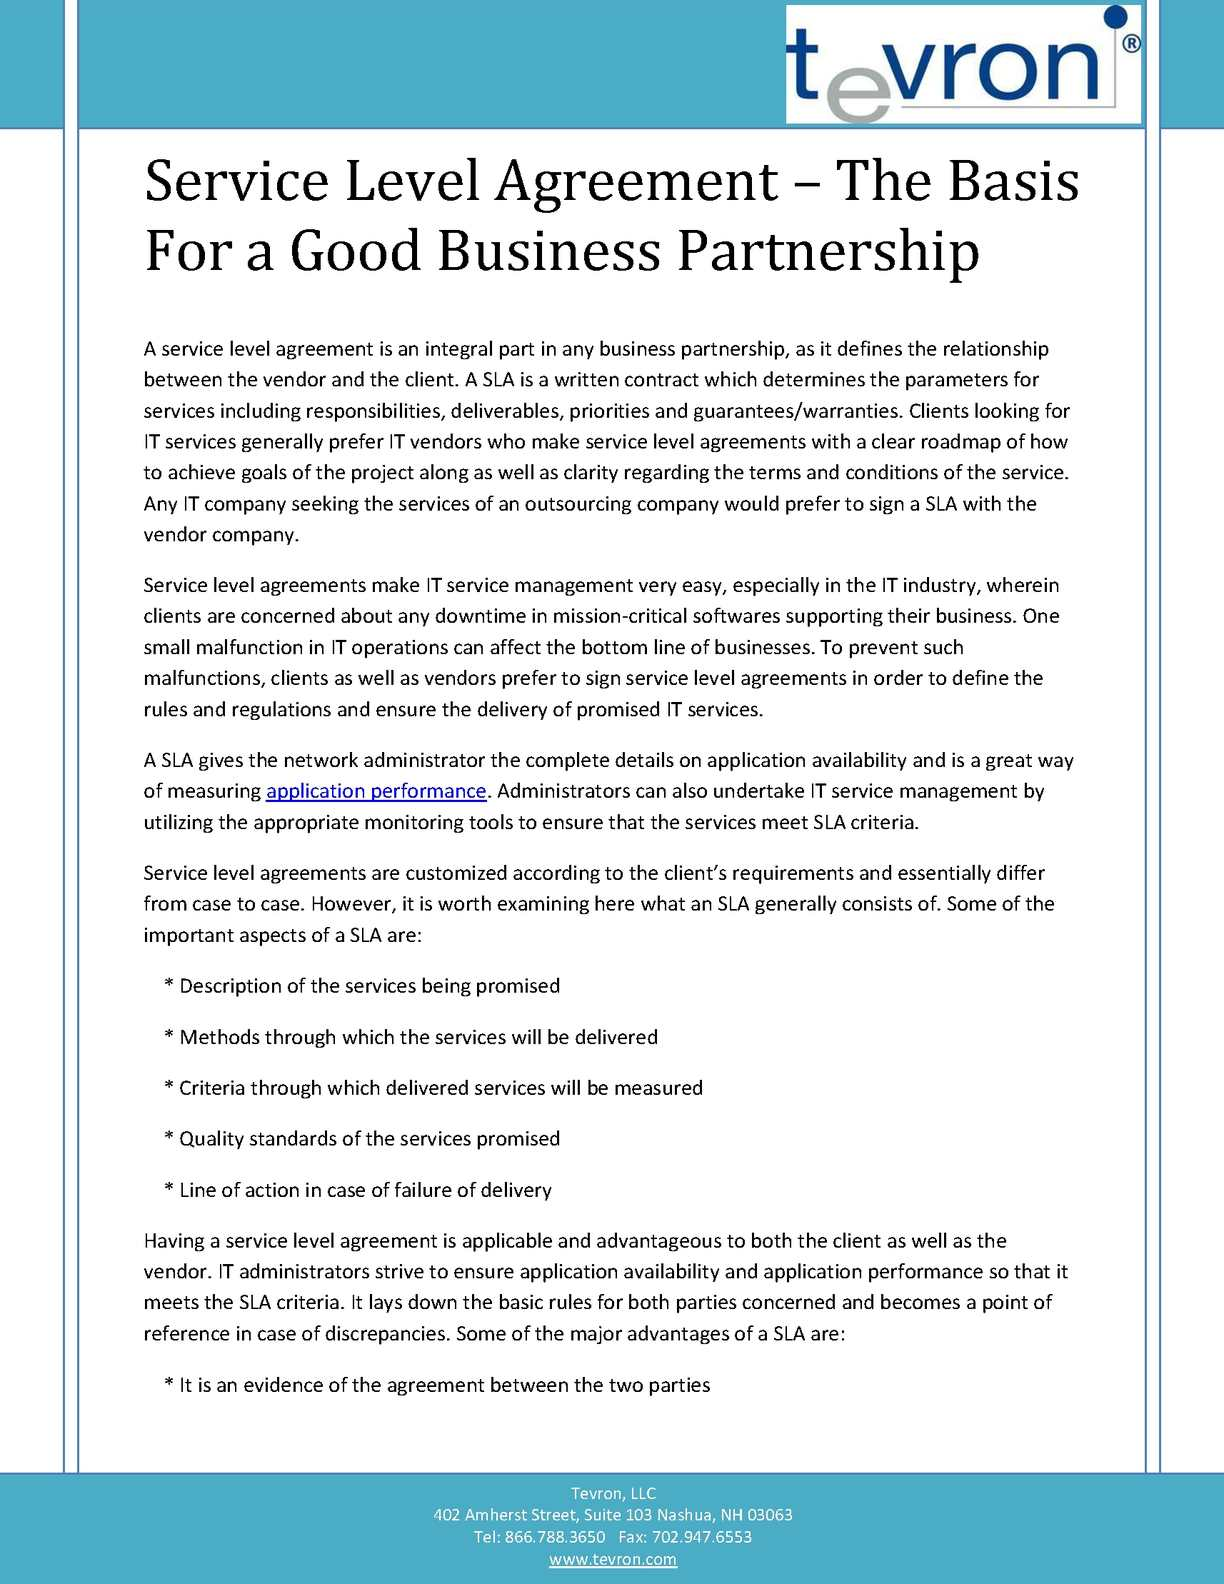 Calamo Service Level Agreement The Basis For A Good Business